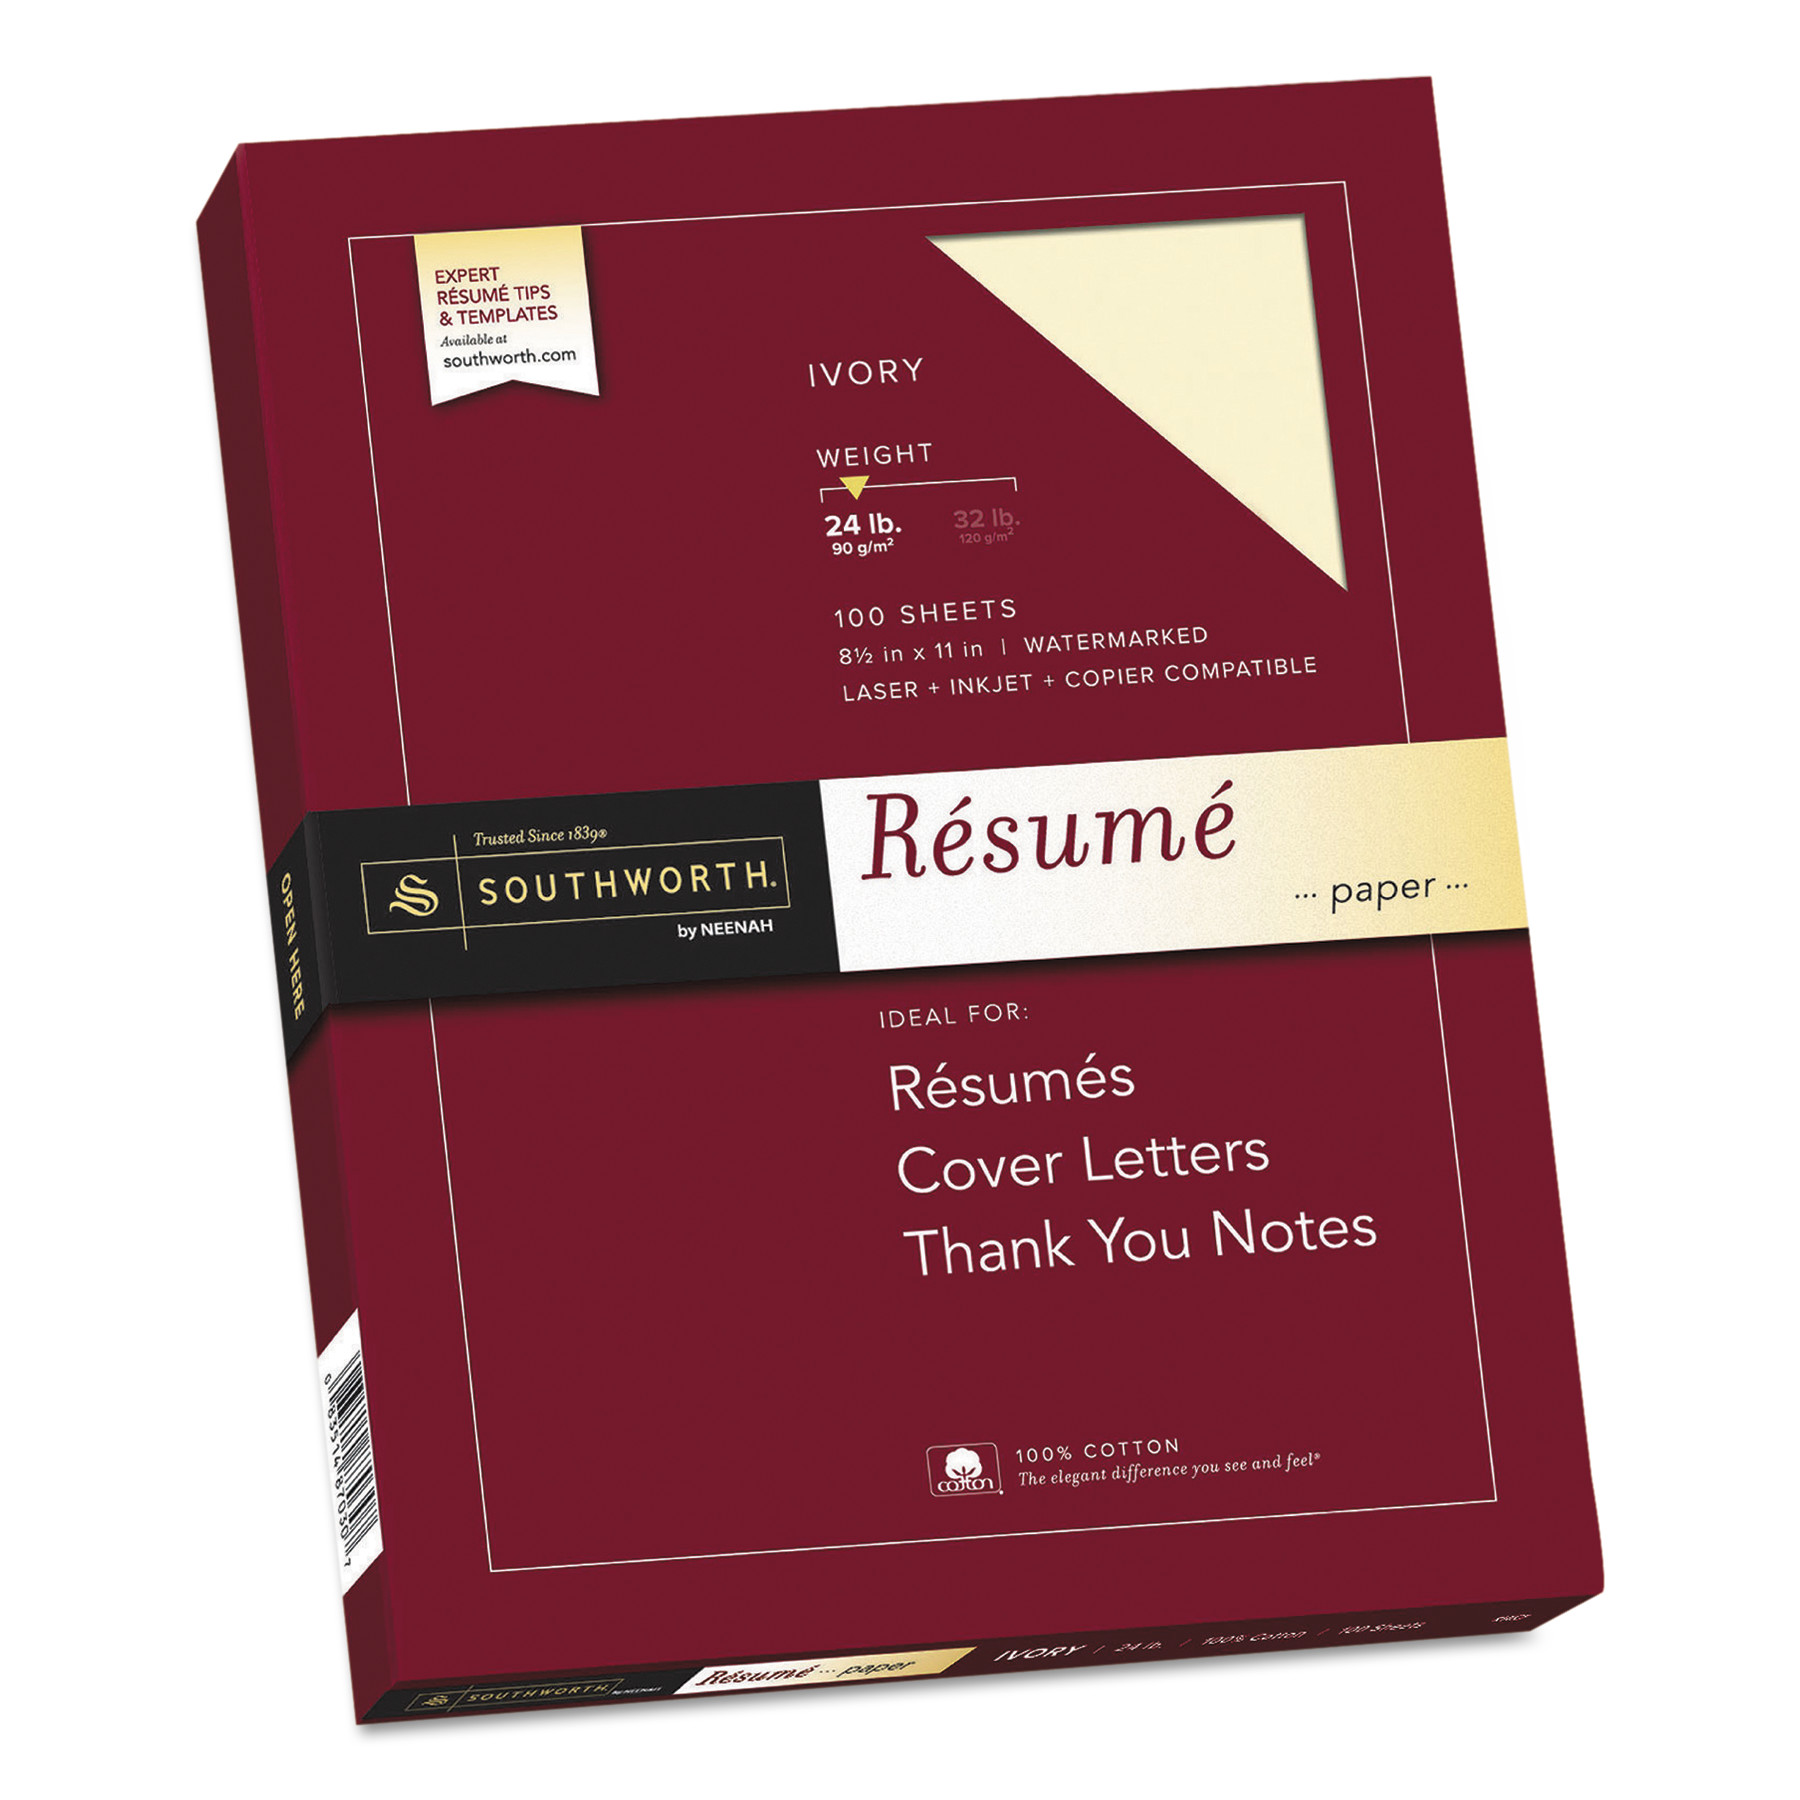 Charming Southworth 100% Cotton Resume Paper, Ivory, 24lb, 8 1/2 X